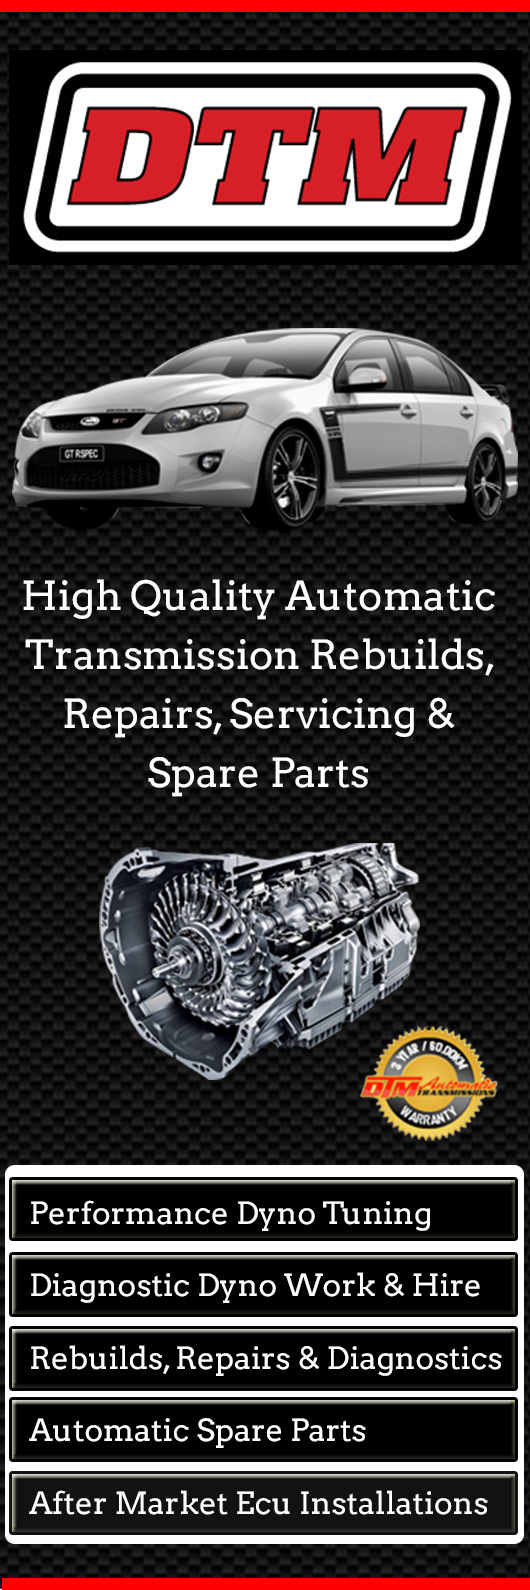 DTM Automotive - Car & Automotive Transmissions - 20-22